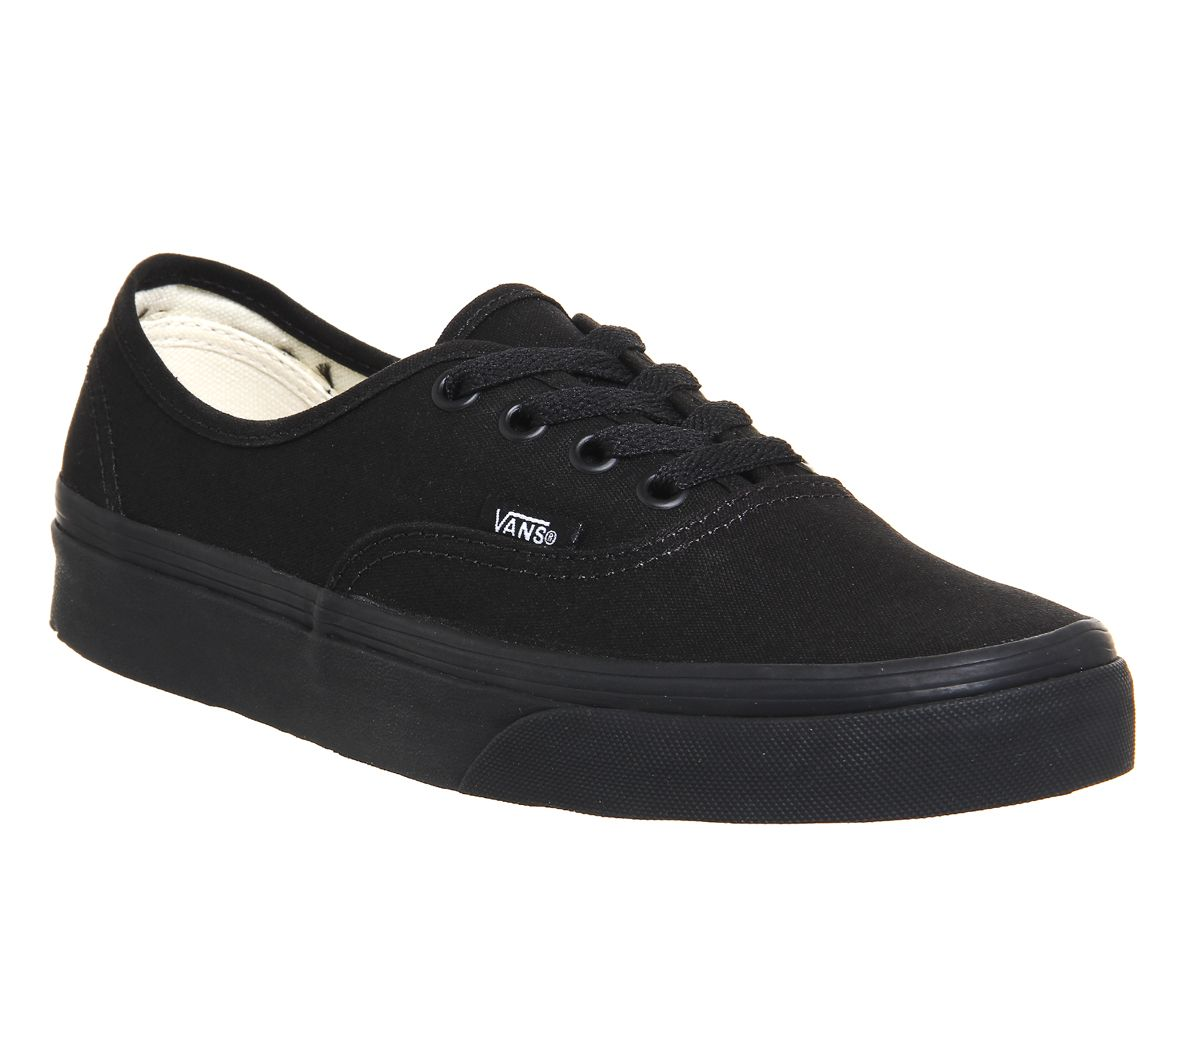 e47079ab3e1b Vans Authentic Black Mono - Unisex Sports